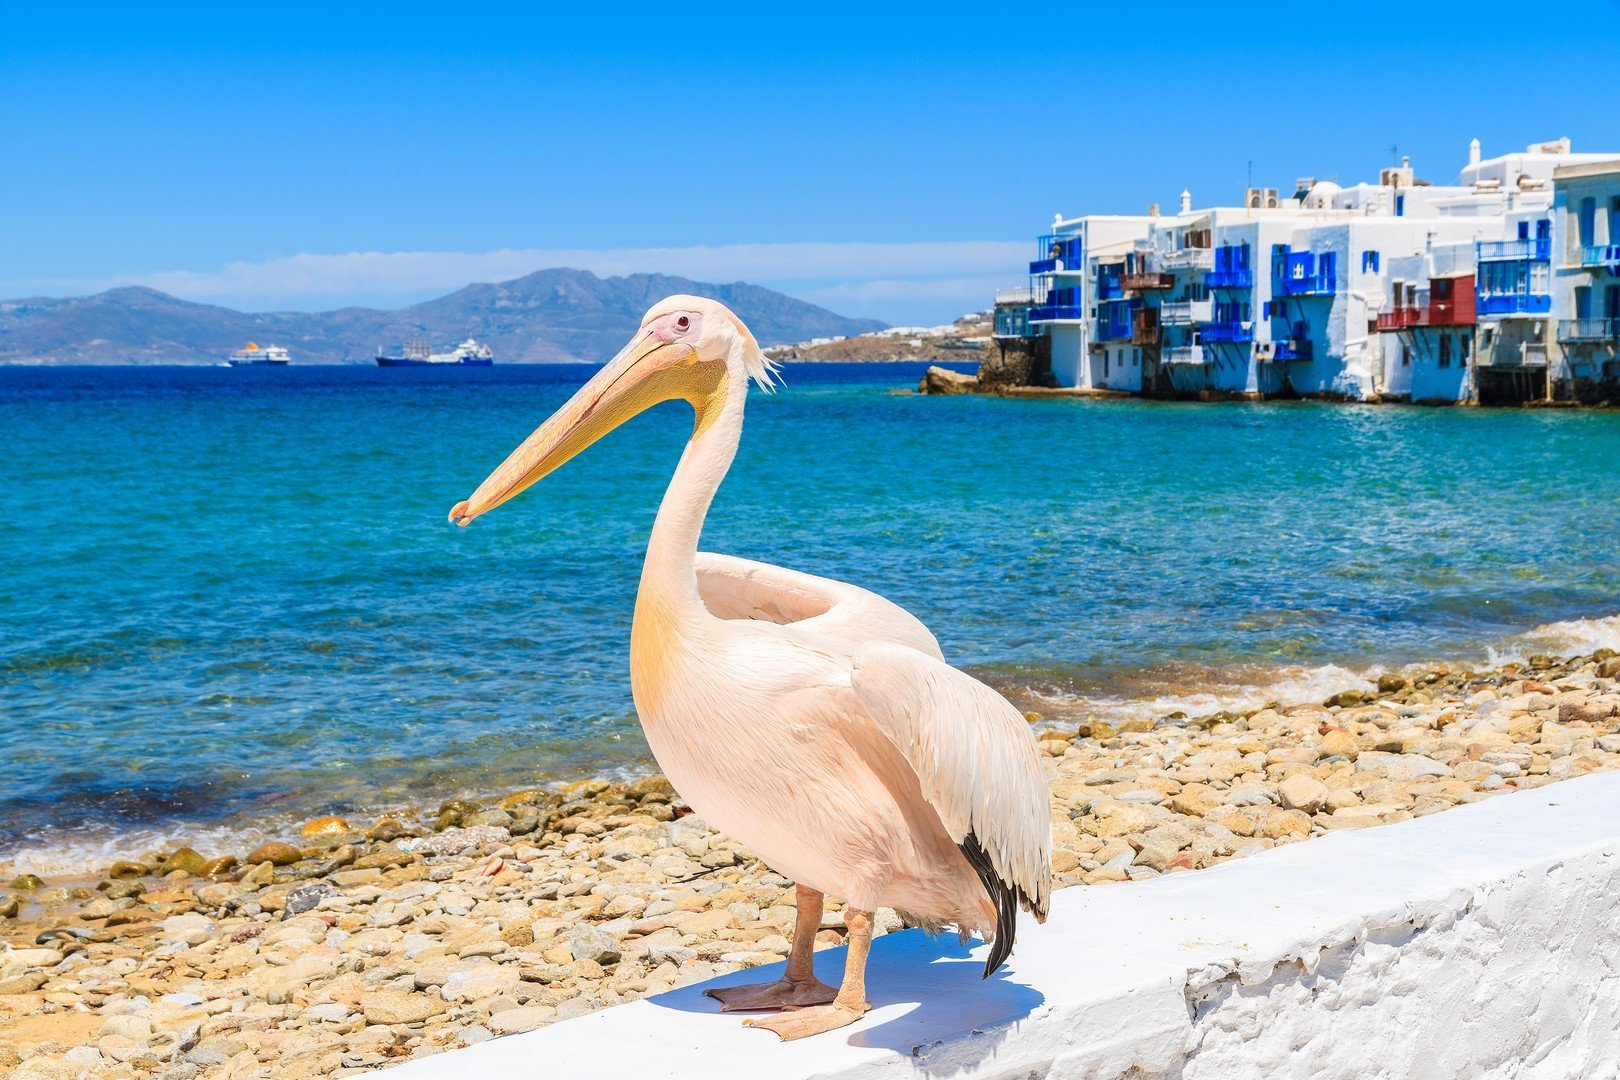 Famous pelican bird posing for photos against beach in Mykonos town shutterstock_428318647